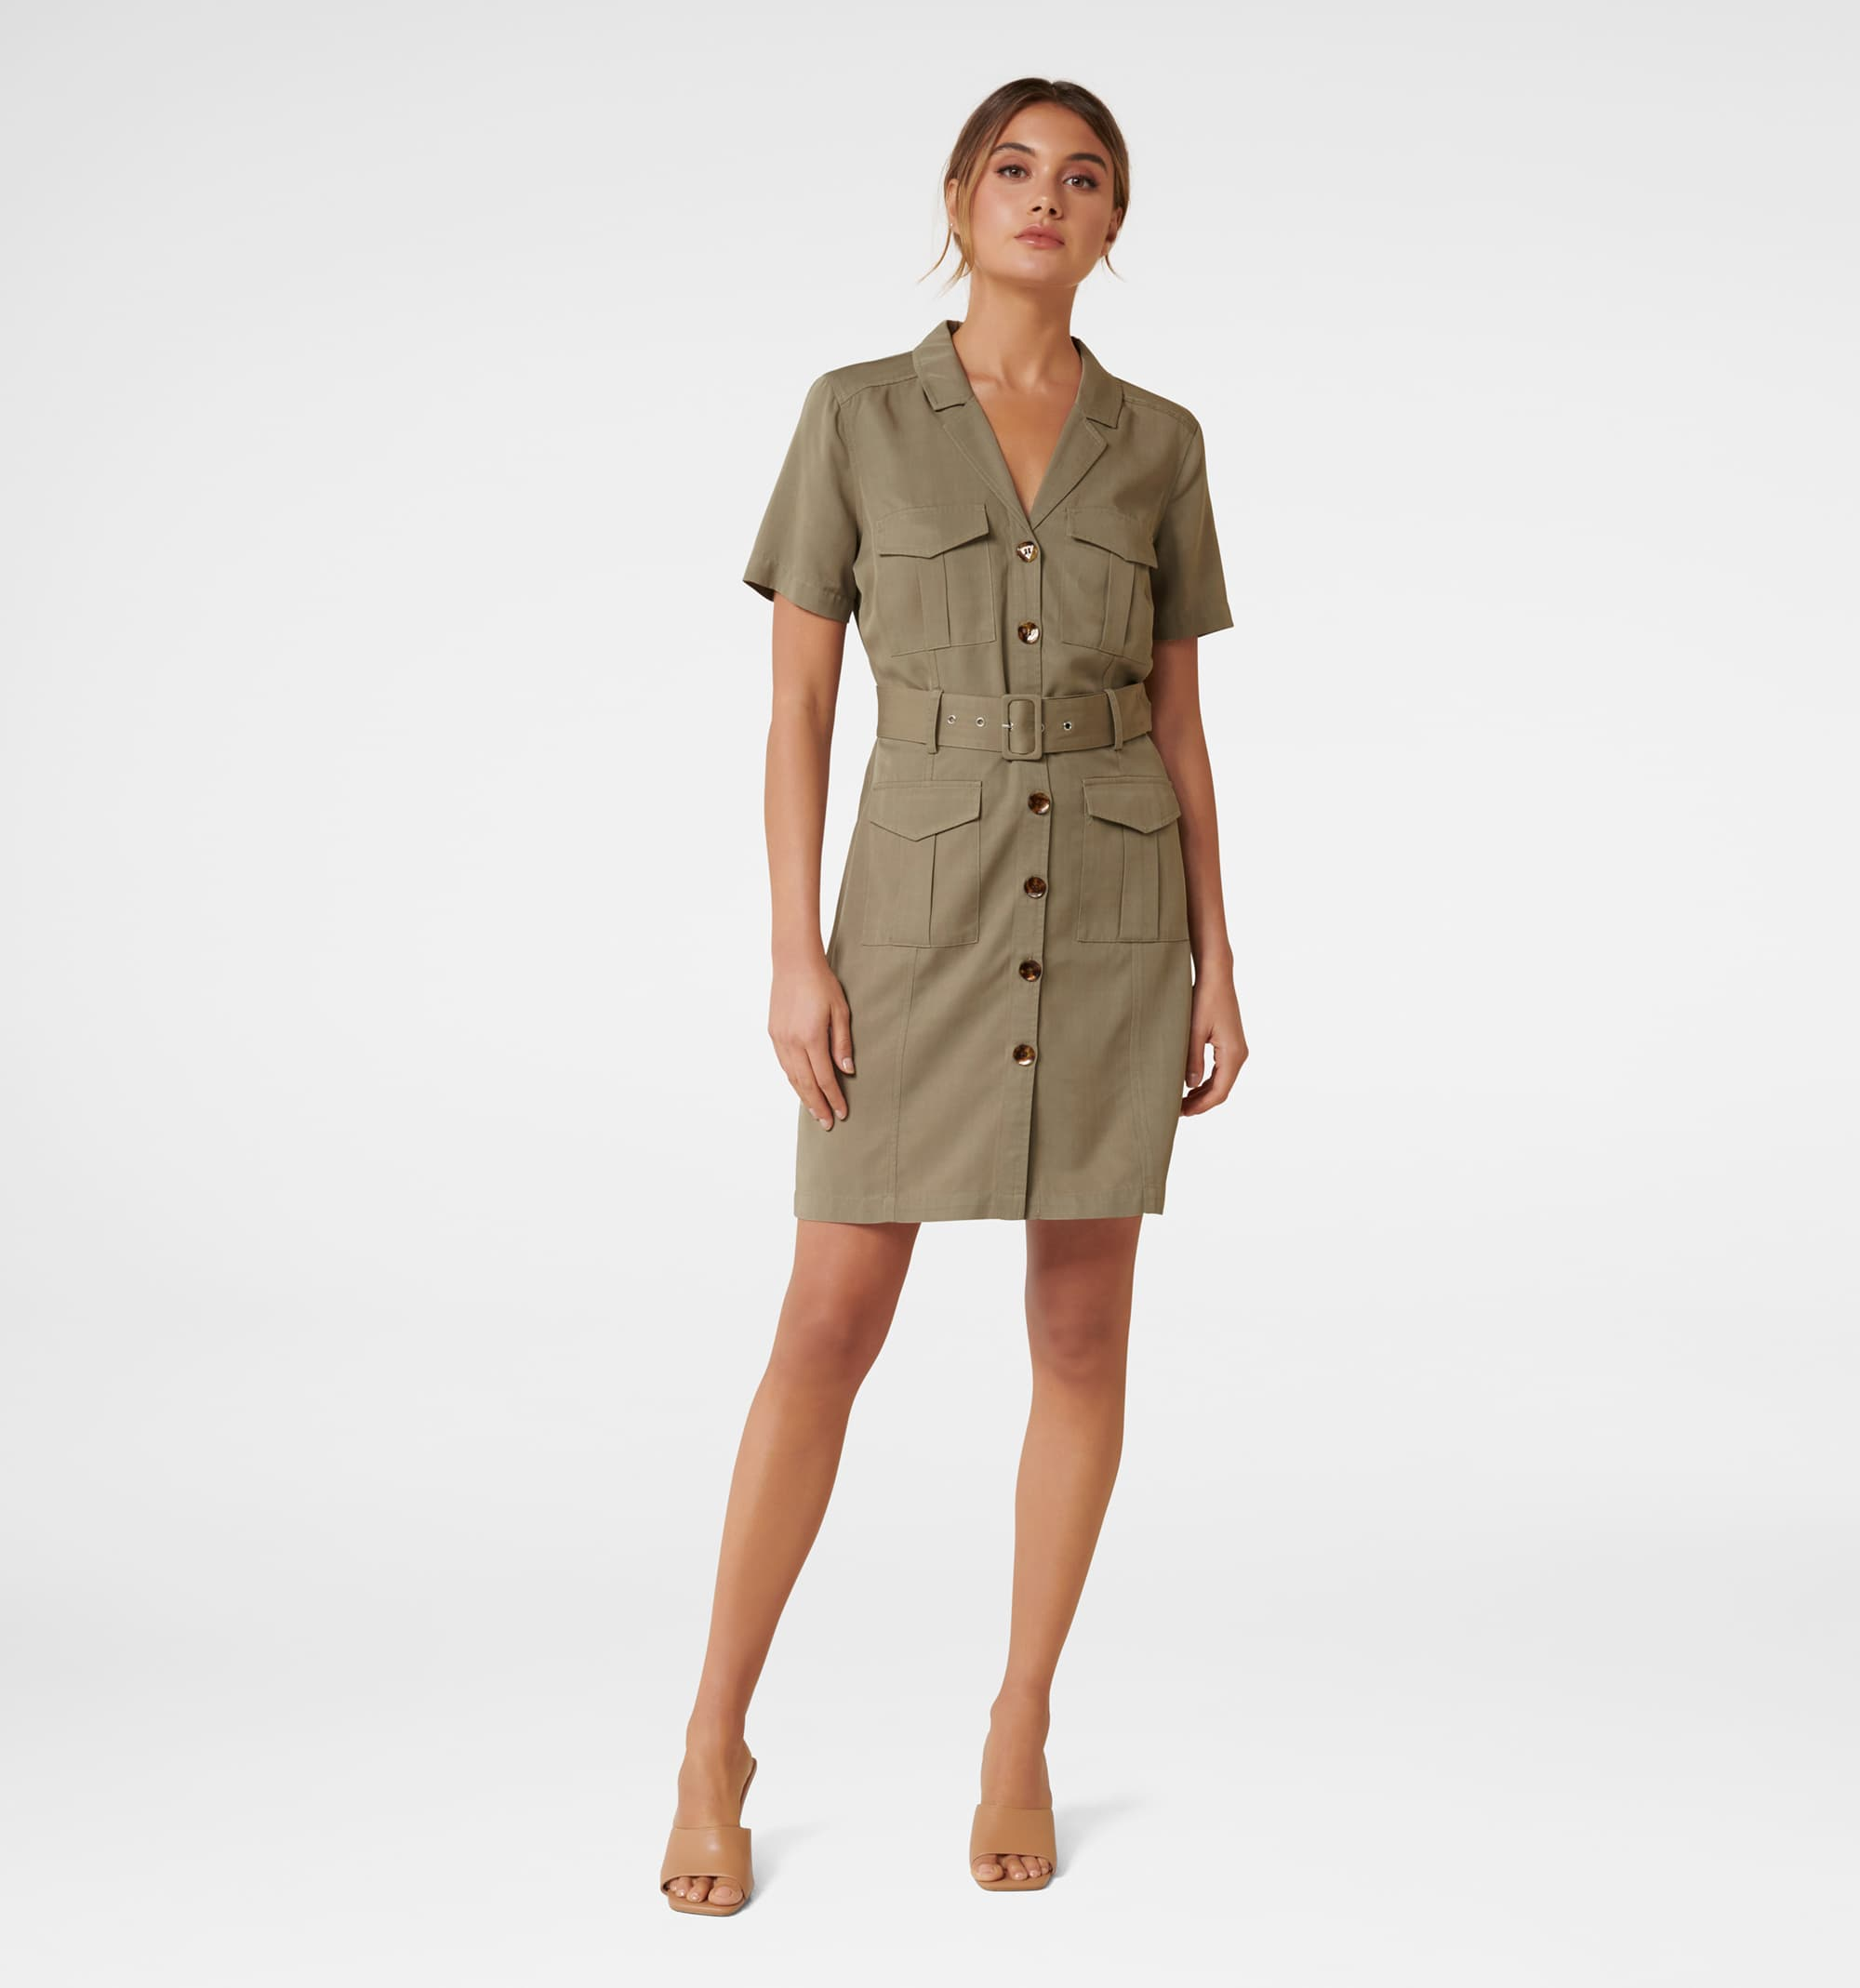 Forever New Women Casual Wear Olive Dress